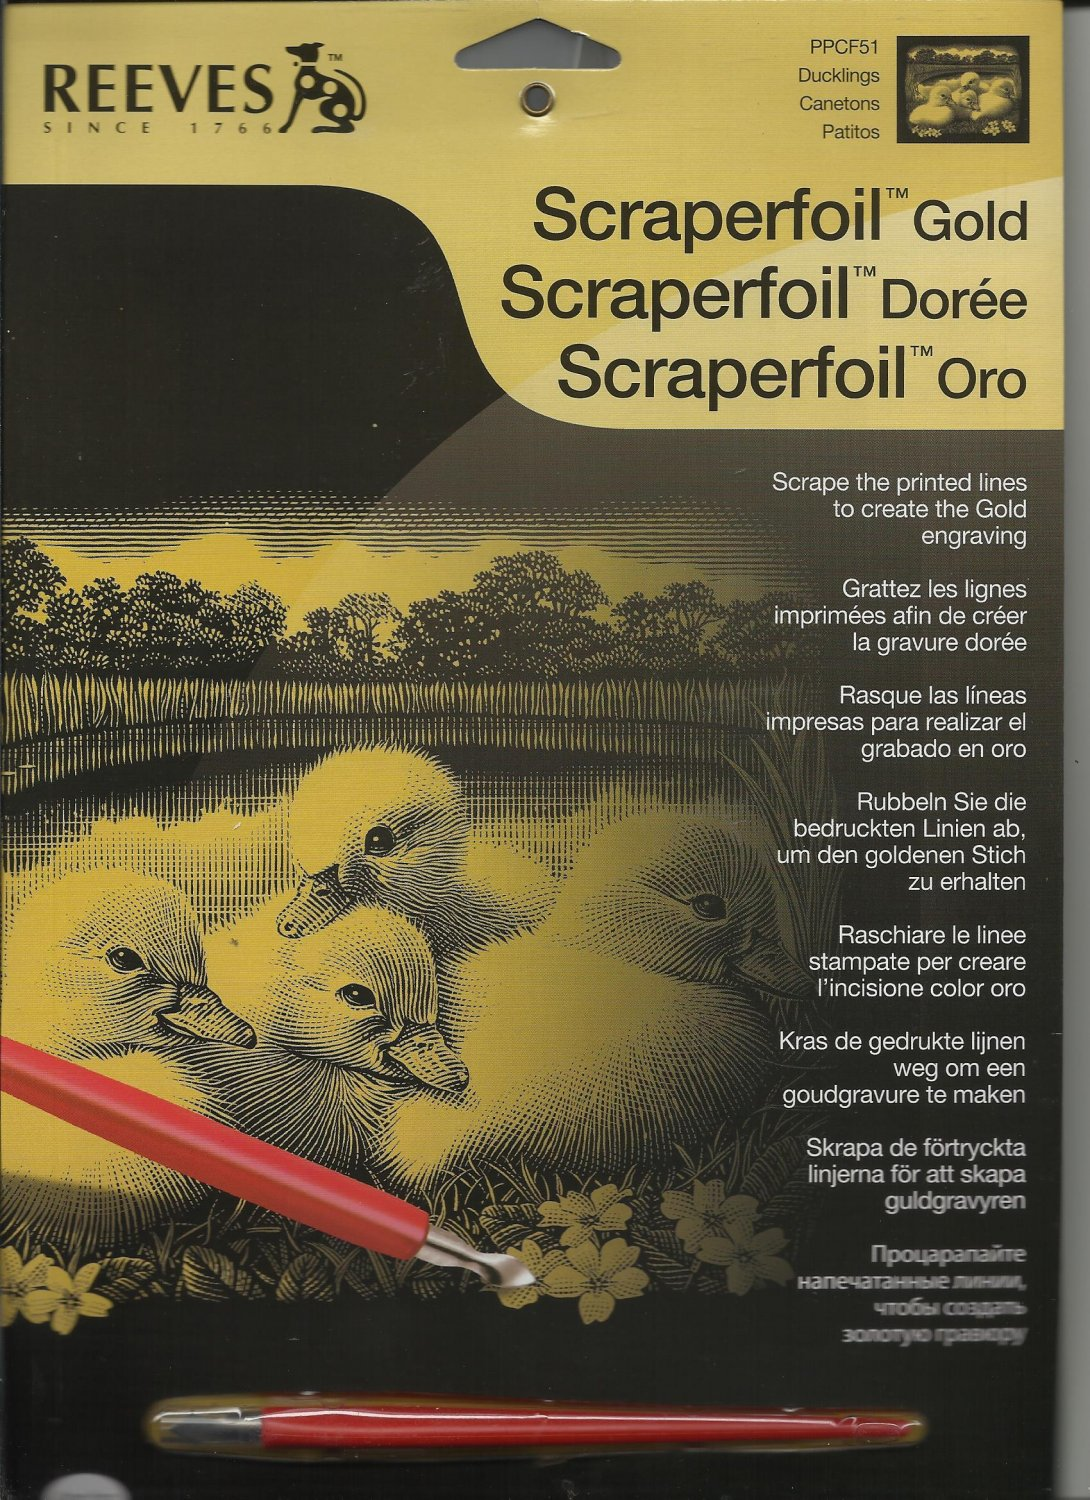 One Scraperfoil Gold Ducklings Craft Kit.